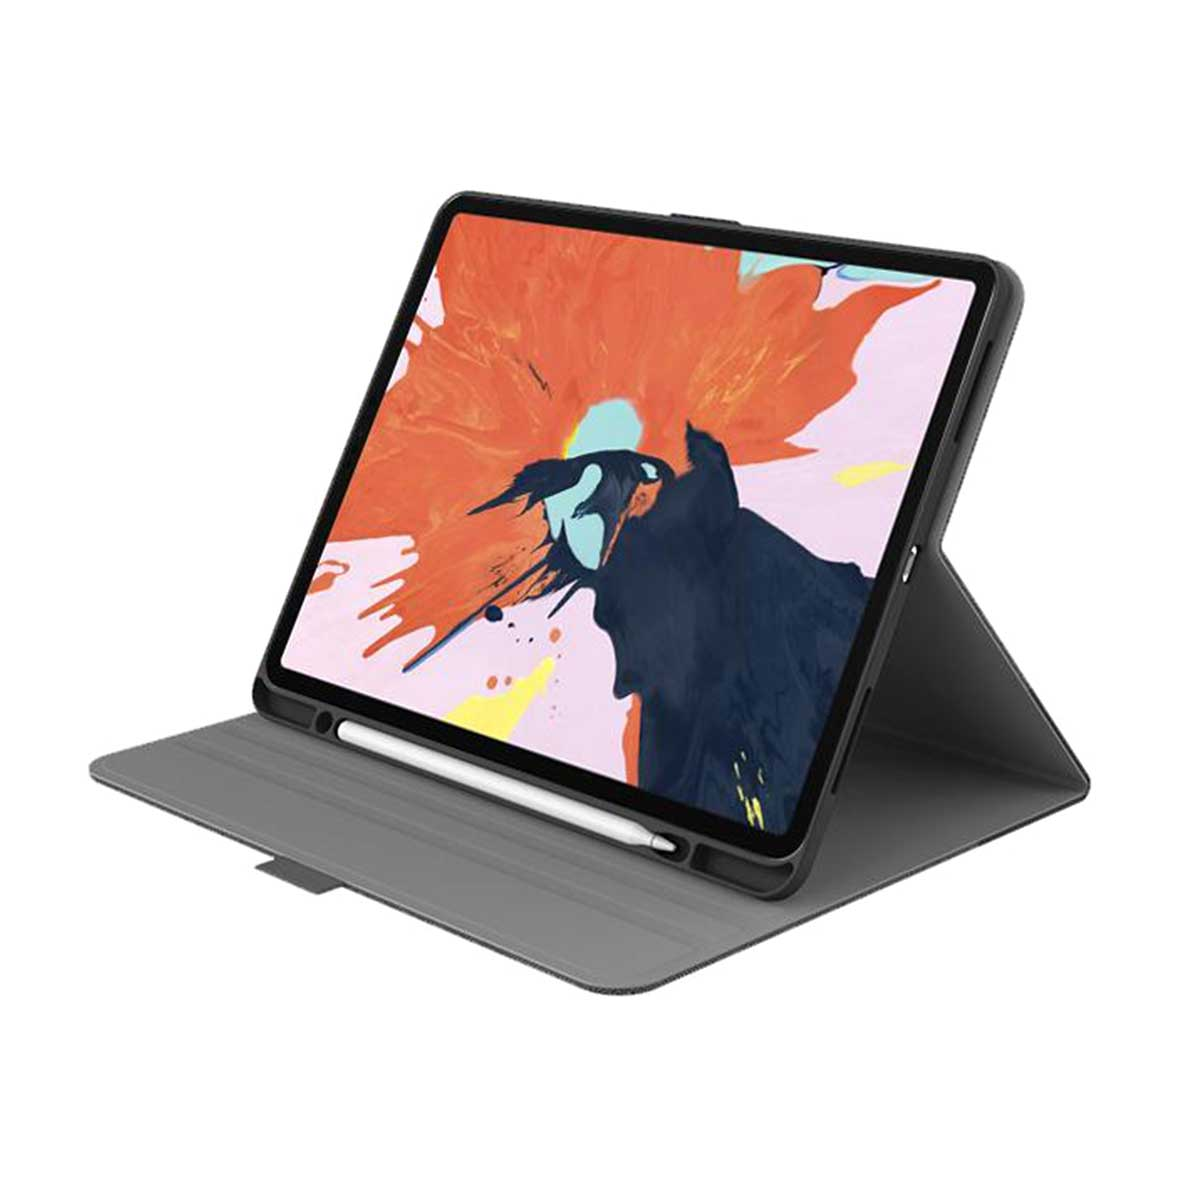 Cygnett - TekView with Apple pencil holder for iPad Pro 12.9 - Grey/Black